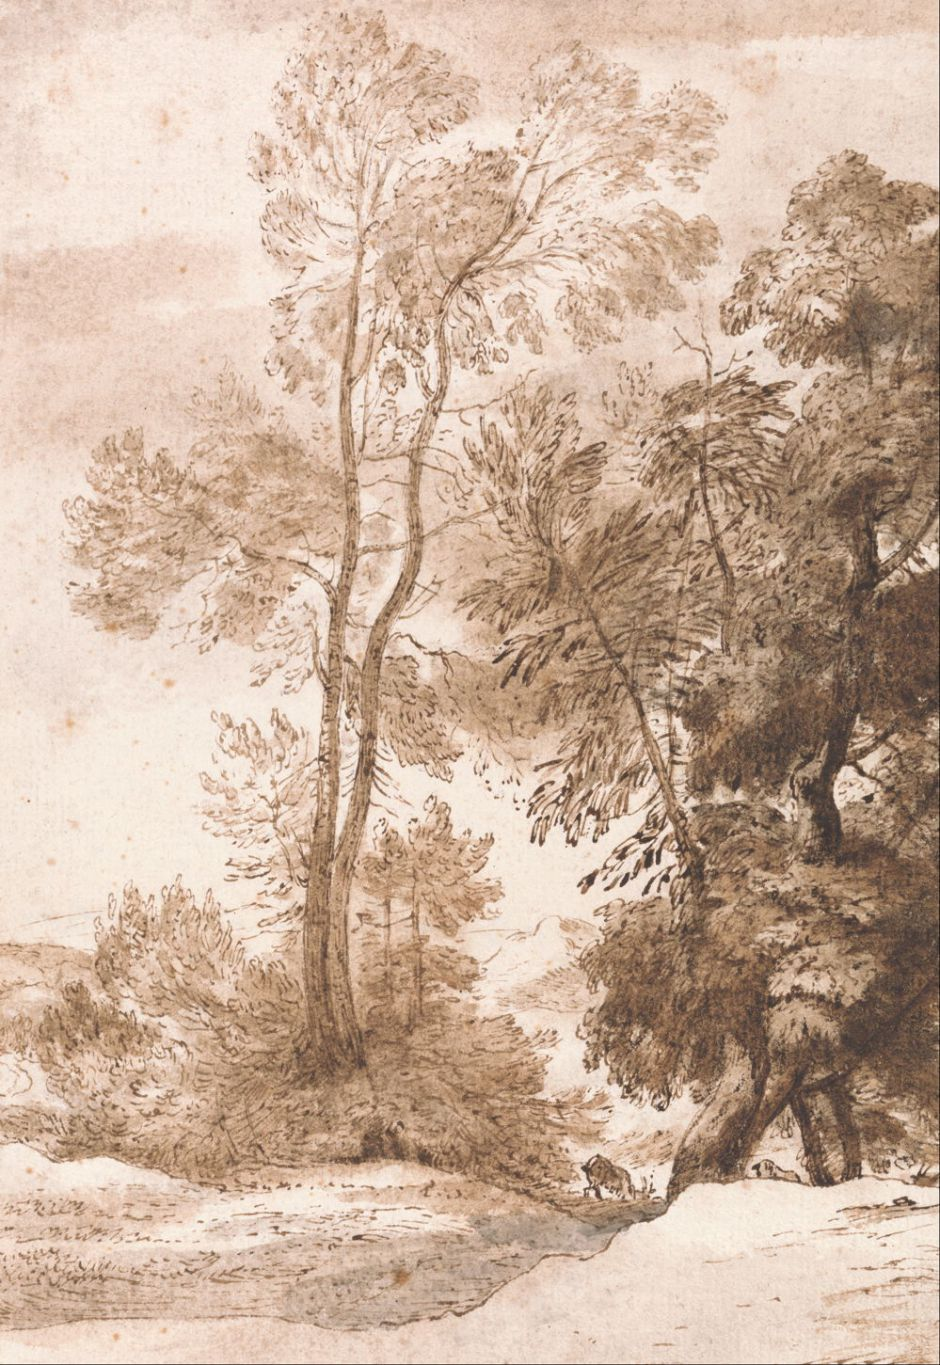 John Constable (1776–1837), Trees and Deer (1825), pen and brown ink with brown and gray wash on medium, rough, cream laid paper, (Image courtesy of Yale Center for British Art, New Haven, CT)